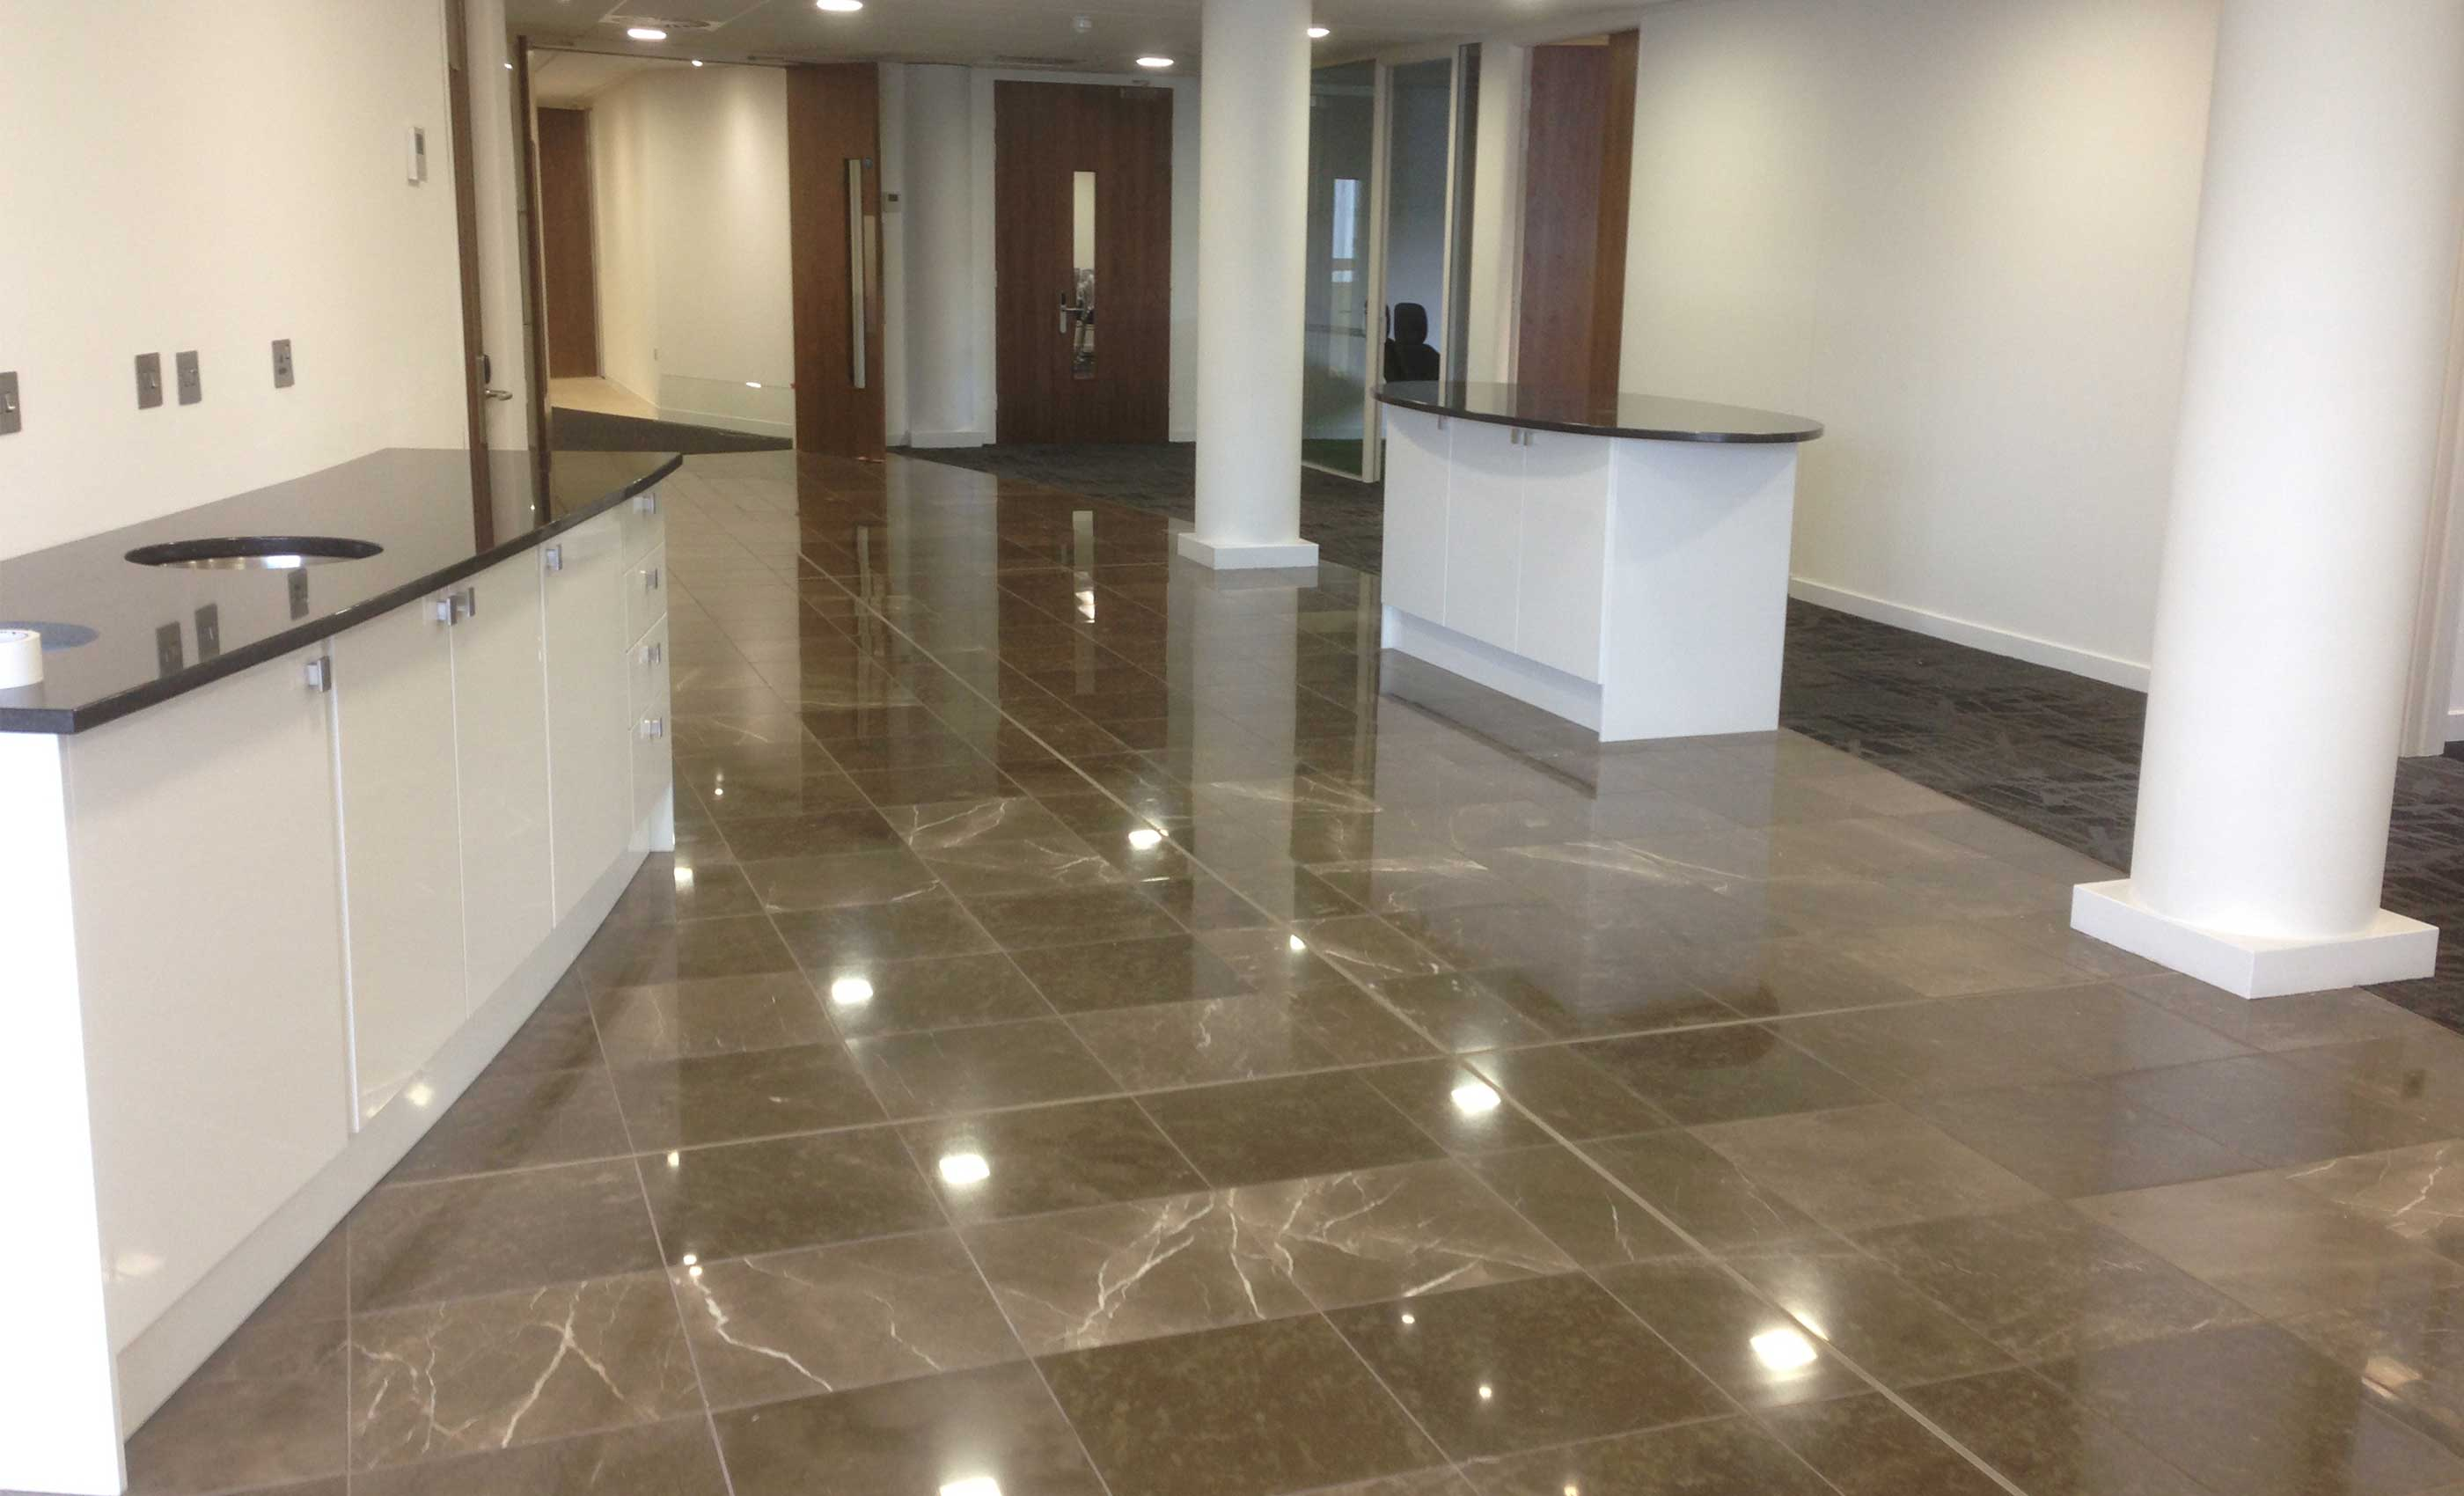 Types of flooring materials and their applications in building marble flooring material in buildings dailygadgetfo Images